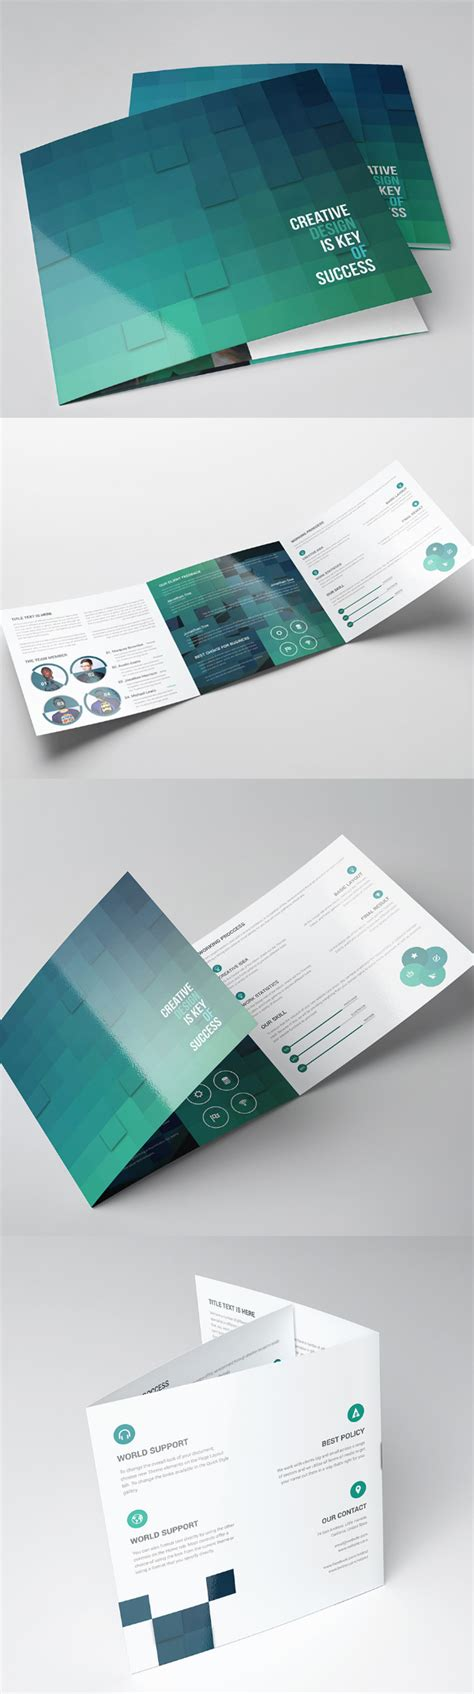 Graphic Design Brochure Templates by New Catalog Brochure Design Templates Design Graphic